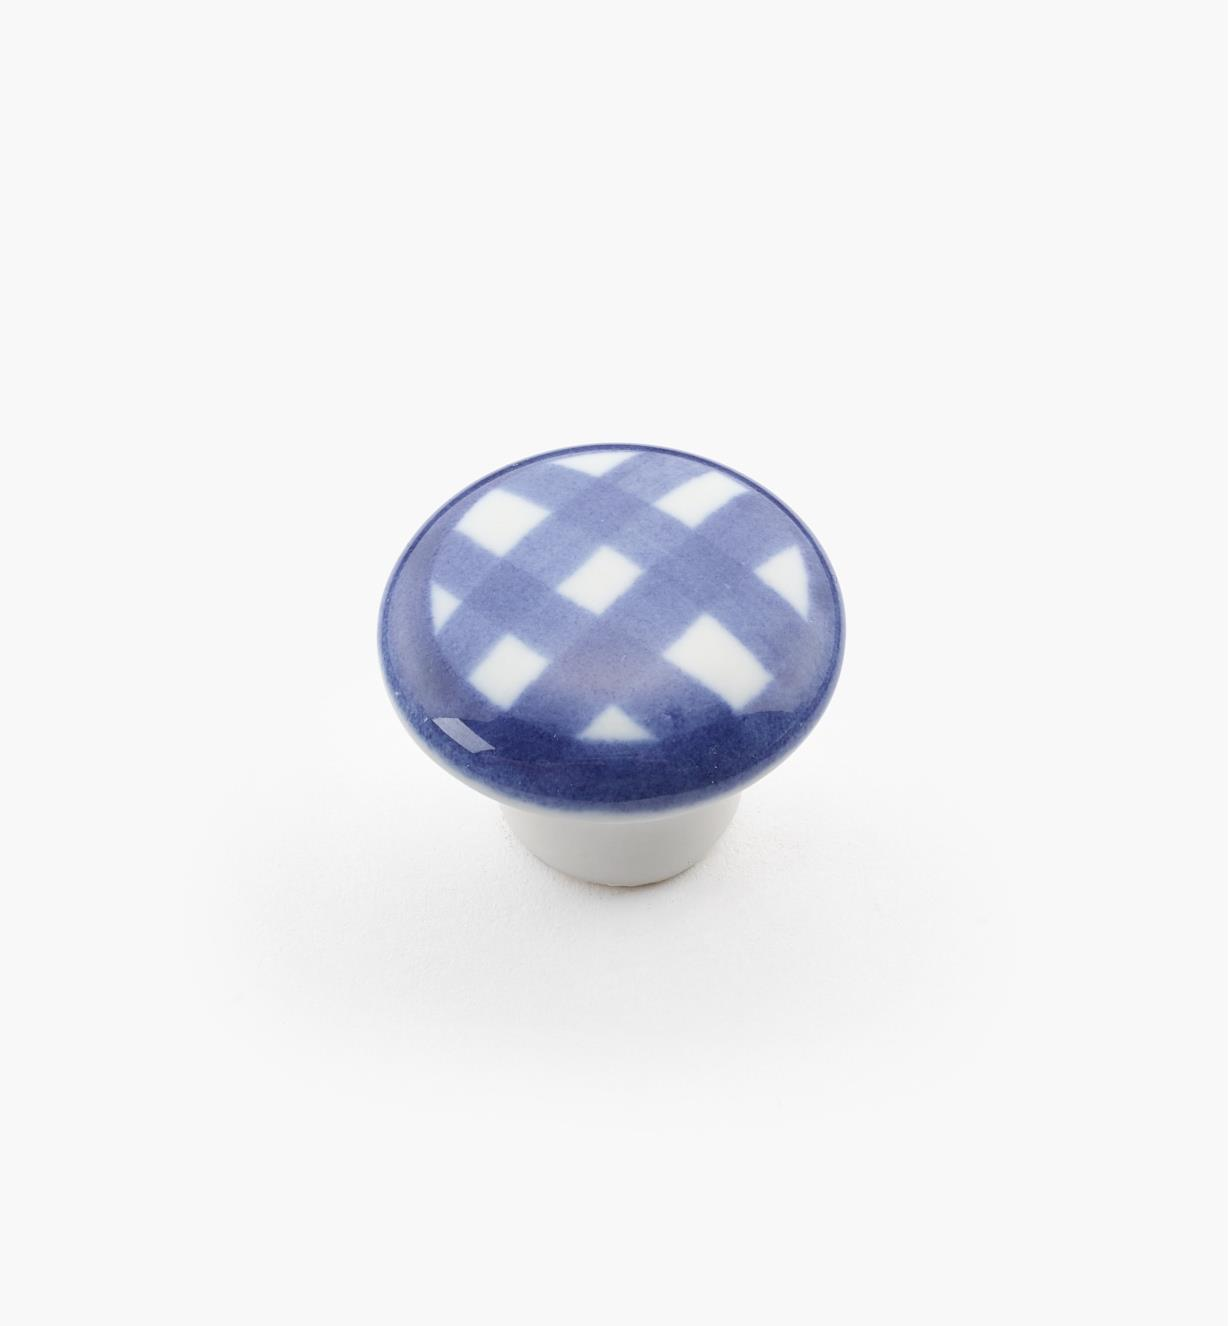 "00W5235 - 1"" x 3/4"" Blue Checkered Knob"